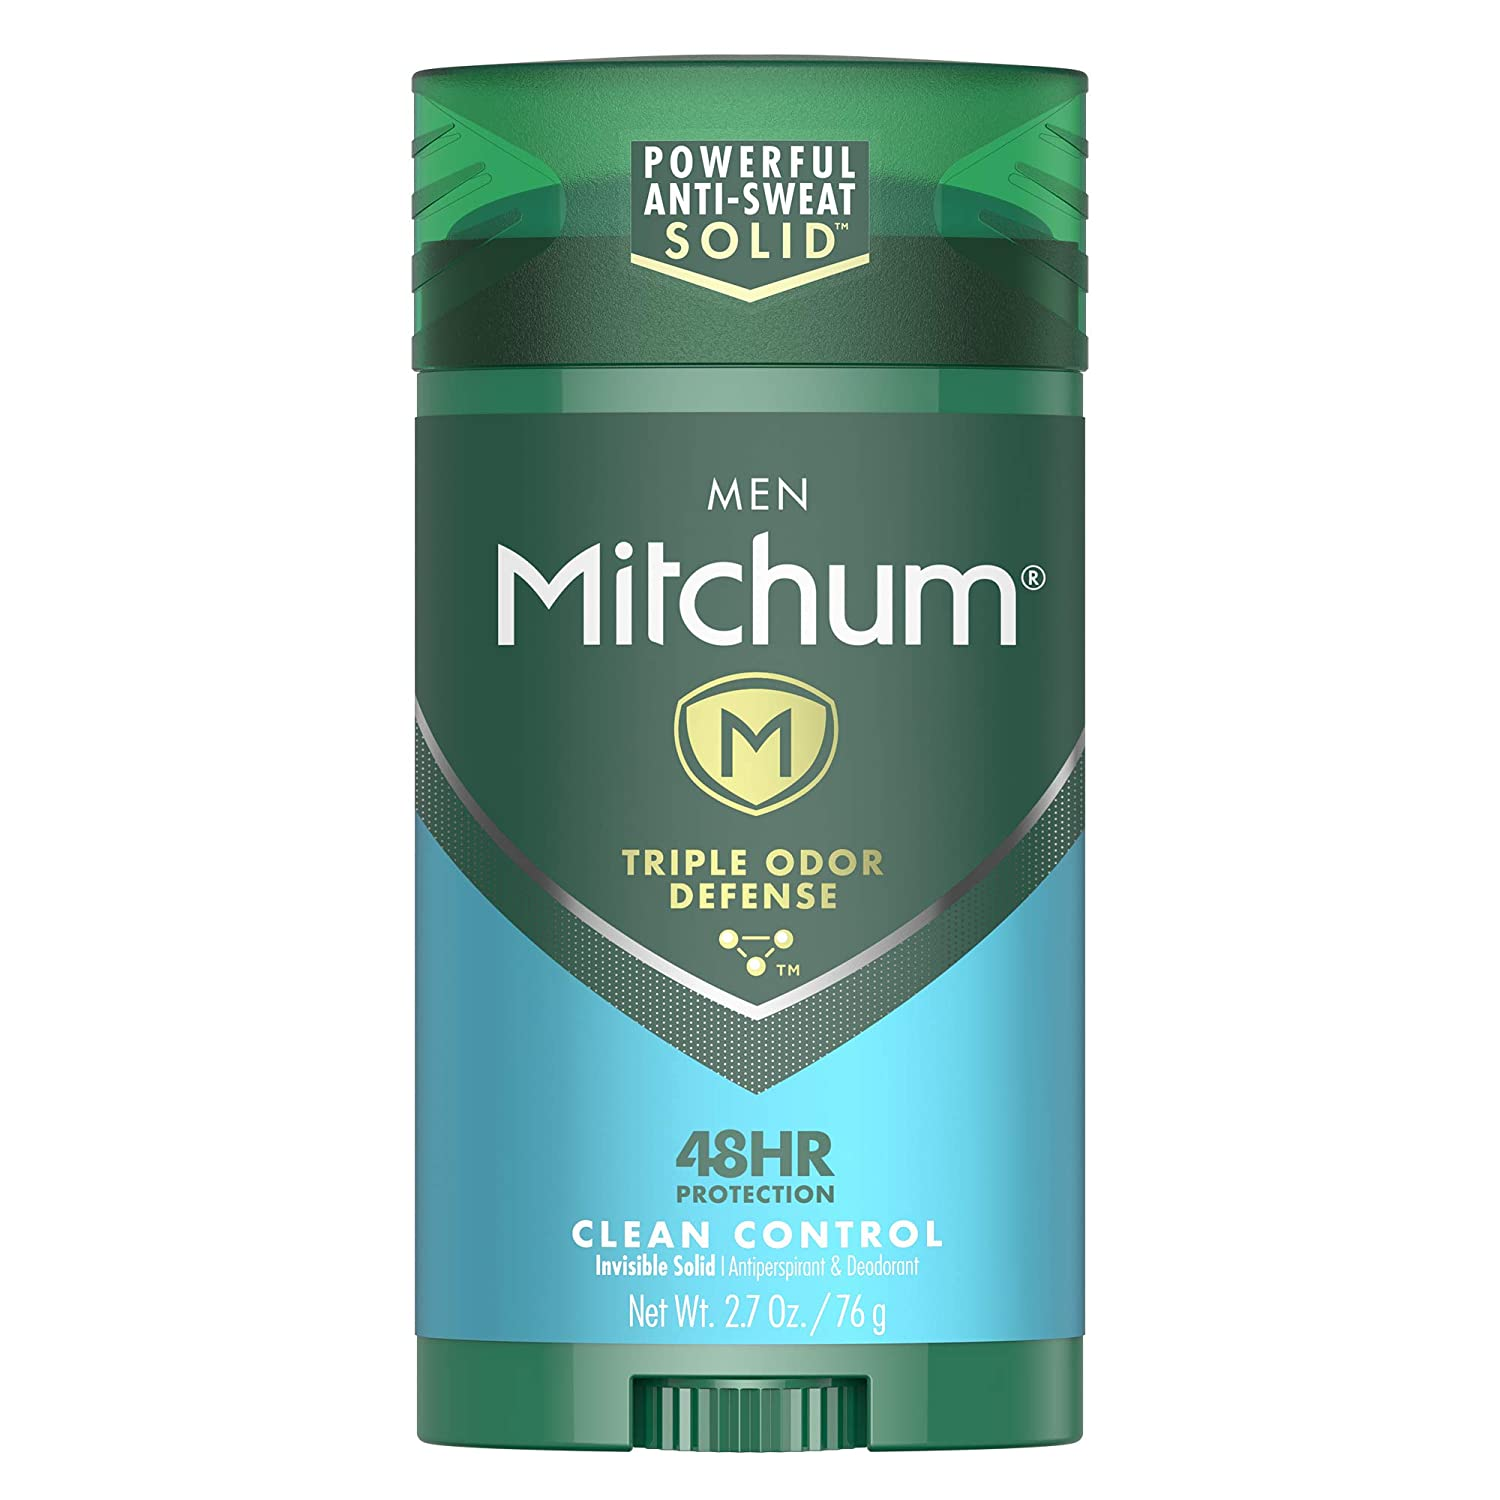 Mitchum antiperspirant deodorant stick for men, clean control